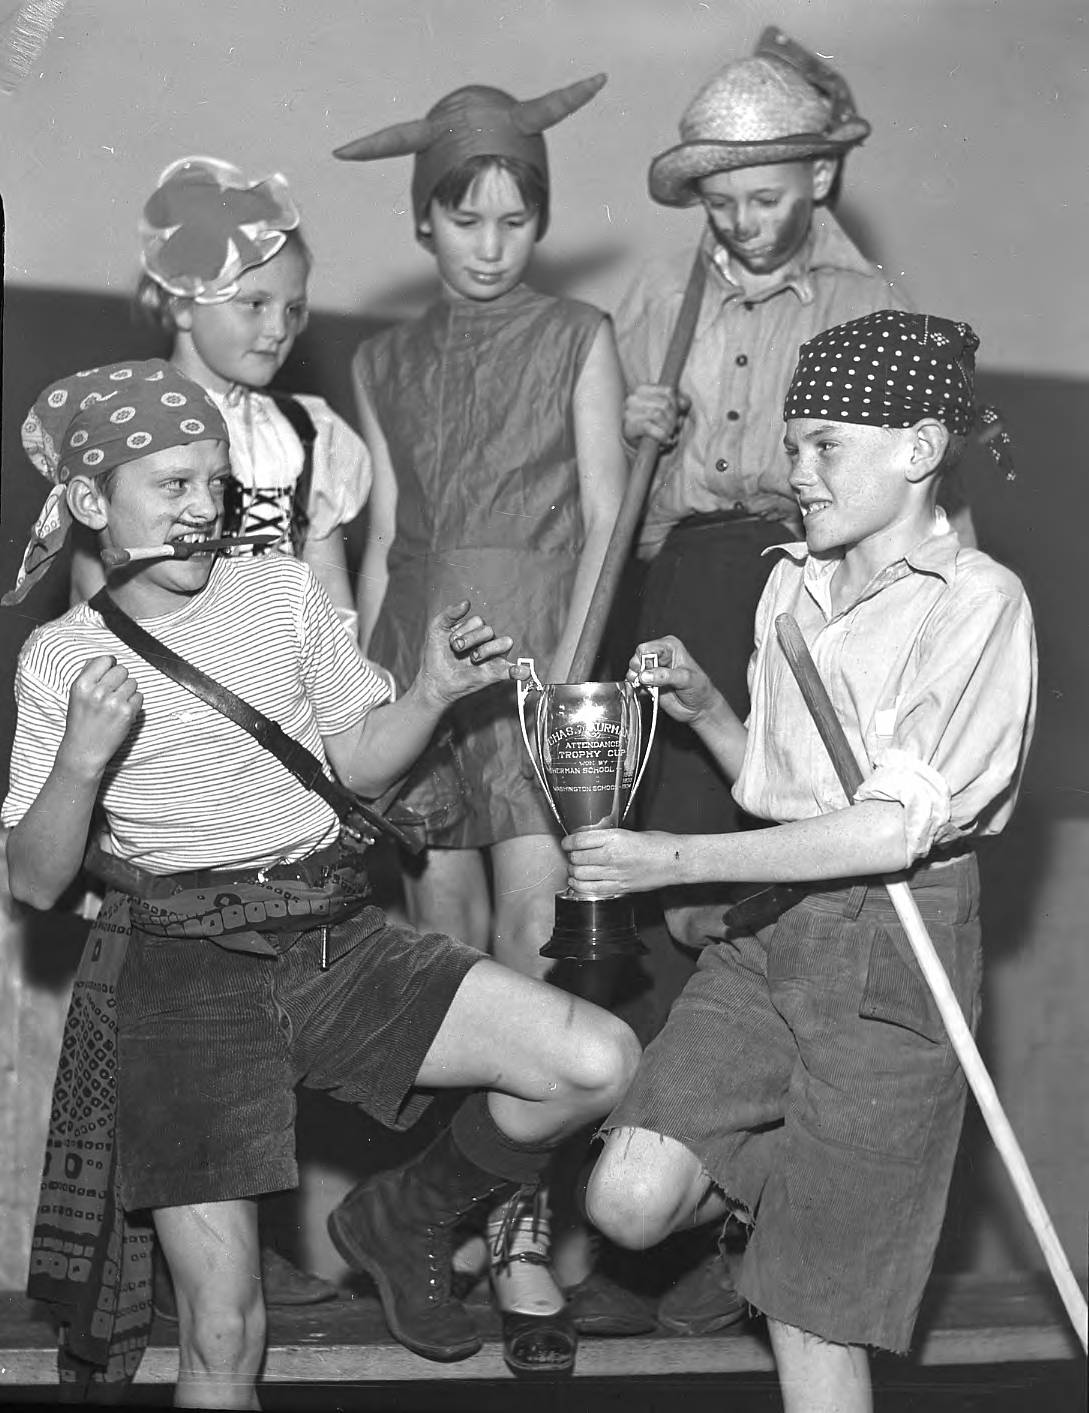 Lyman Burke of Washington School and John Hughes of Jefferson School, togged out as pirates for the Proctor area Halloween costume parade in October of 1935, are ready to do battle for the Attendance Trophy Cup to be awarded to the school having the largest representation in the parade. In back row are Marilyn Wagnild of Jefferson and Betty Jean Woley and Edward Miller of Point Defiance School. Several thousand children and their parents joined in the parade and party sponsored by the 26th & Proctor St. Business Men's Club.(T. Times, 10/31/1935, p. 1)